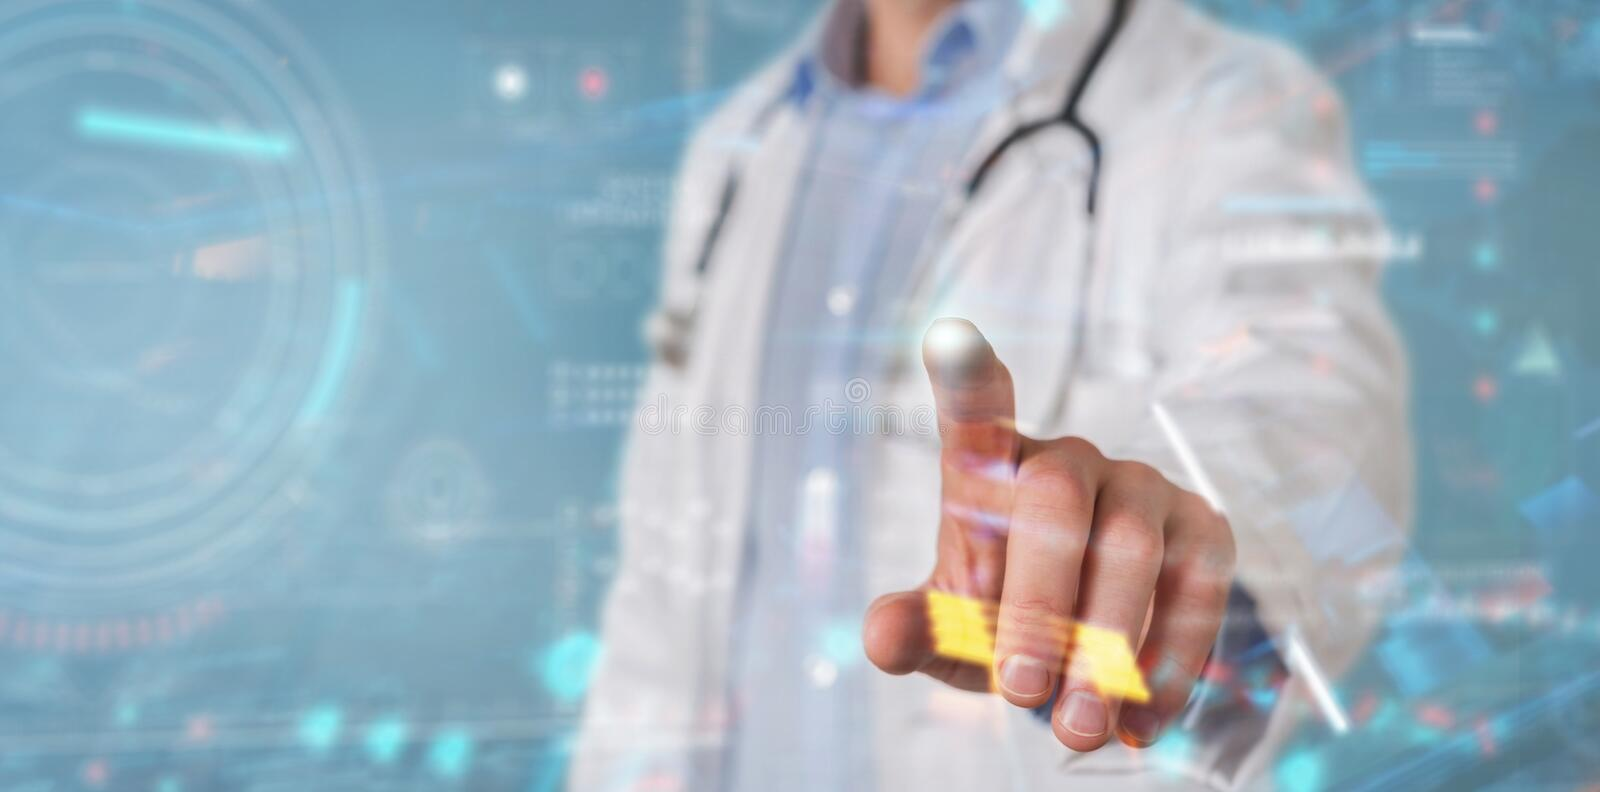 Scientist using digital technological interface with datas 3D rendering vector illustration